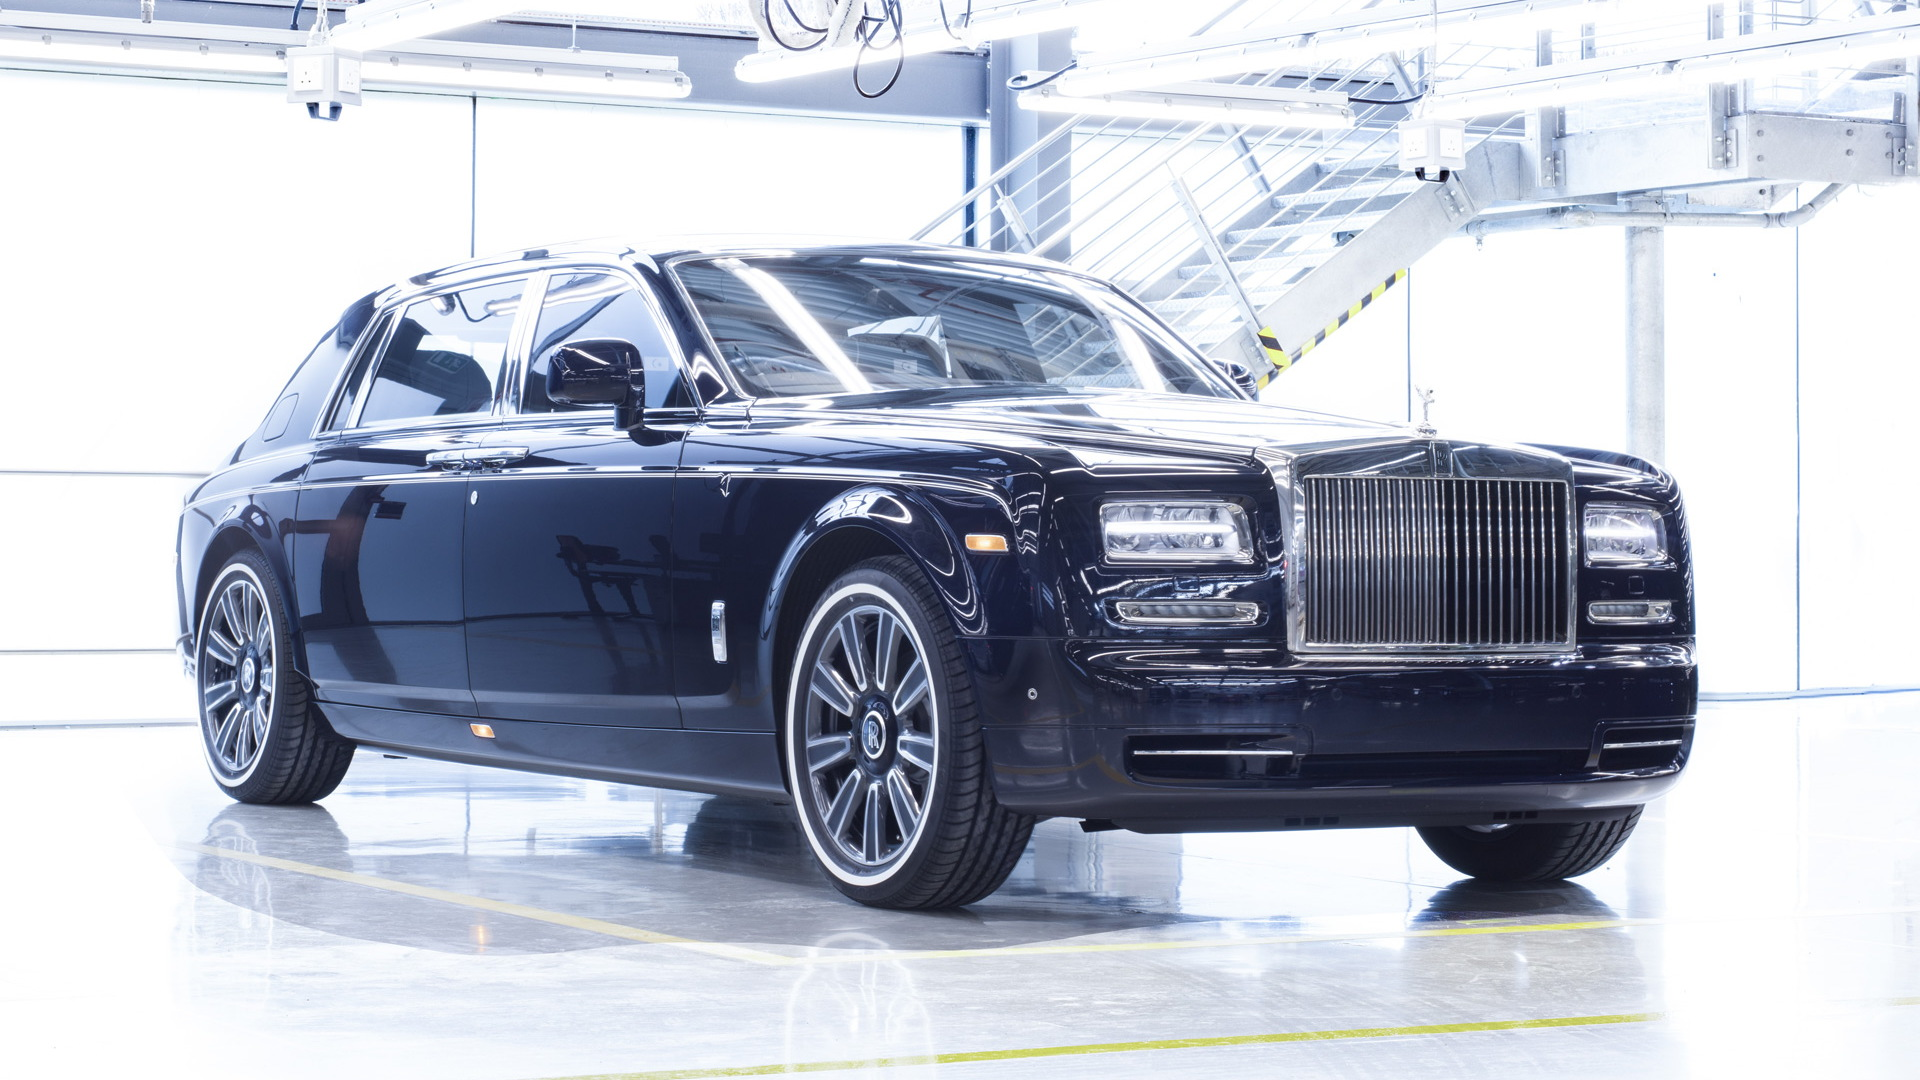 Final seventh-generation Rolls-Royce Phantom